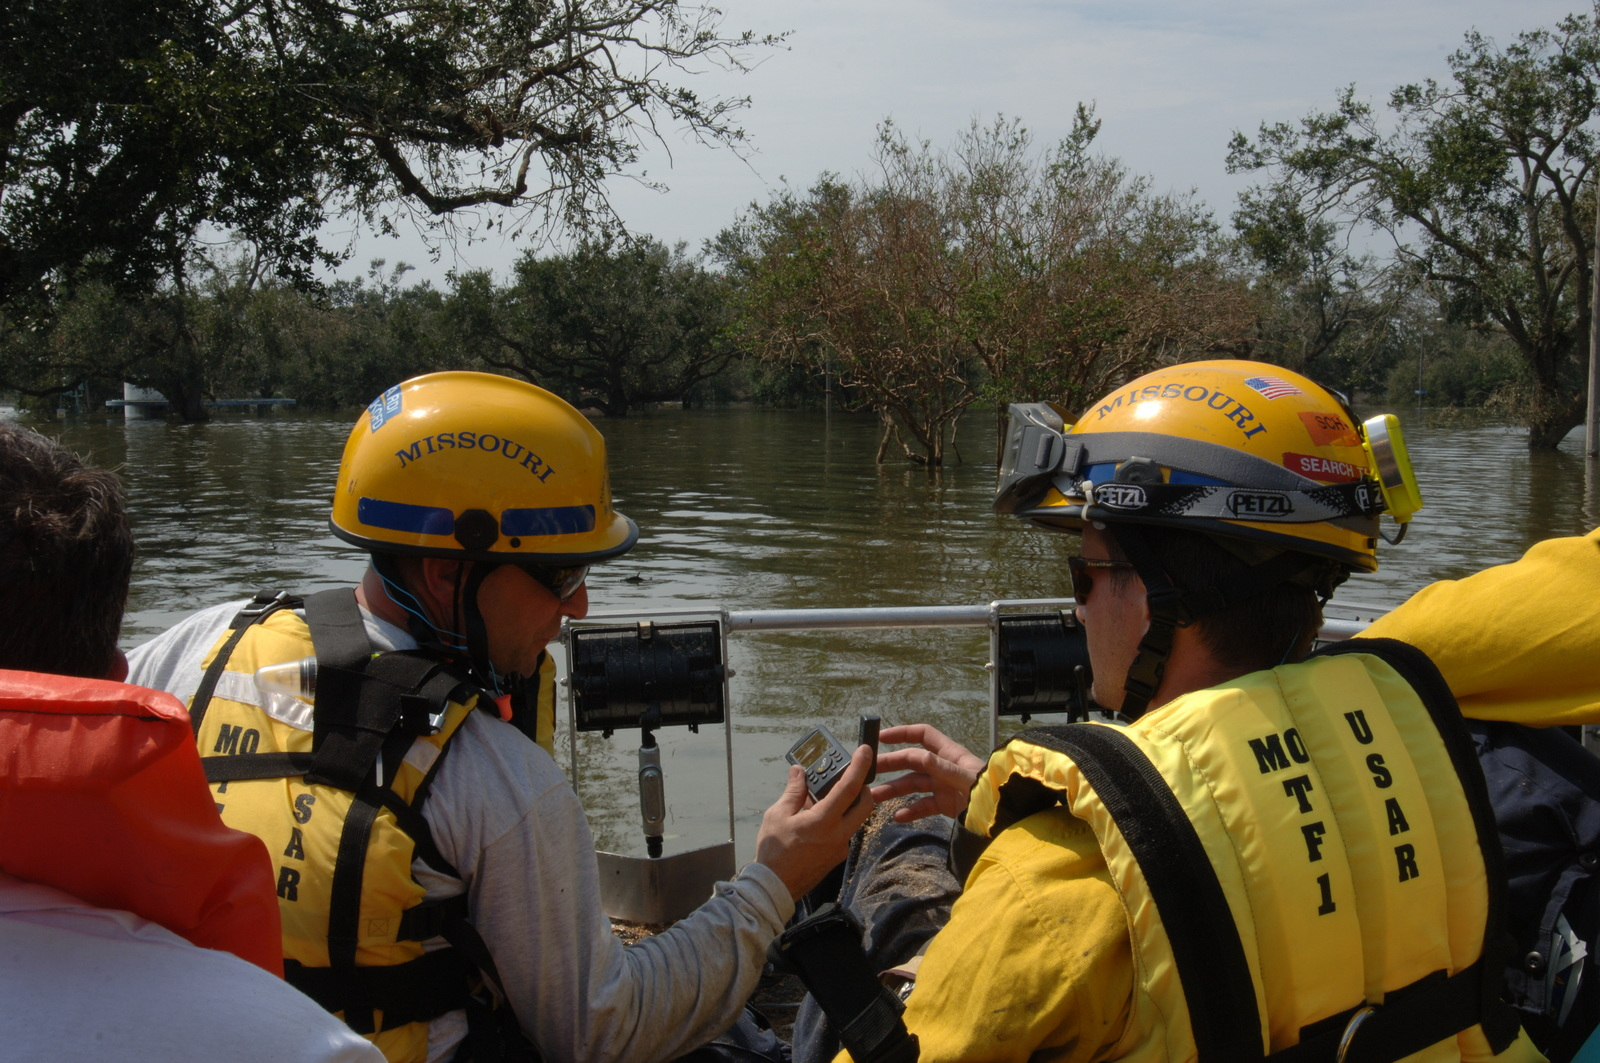 [Hurricane Katrina] New Orleans, LA, August 30, 2005 -- This Urban Search and Rescue (US&R) team from Missouri Task Force 1 uses a GPS in their search of a flooded New Orleans neighborhood.  New Orleans is being evacuated as a result of Hurricane Katrina and teams are searching for victims.  Jocelyn Augustino/FEMA